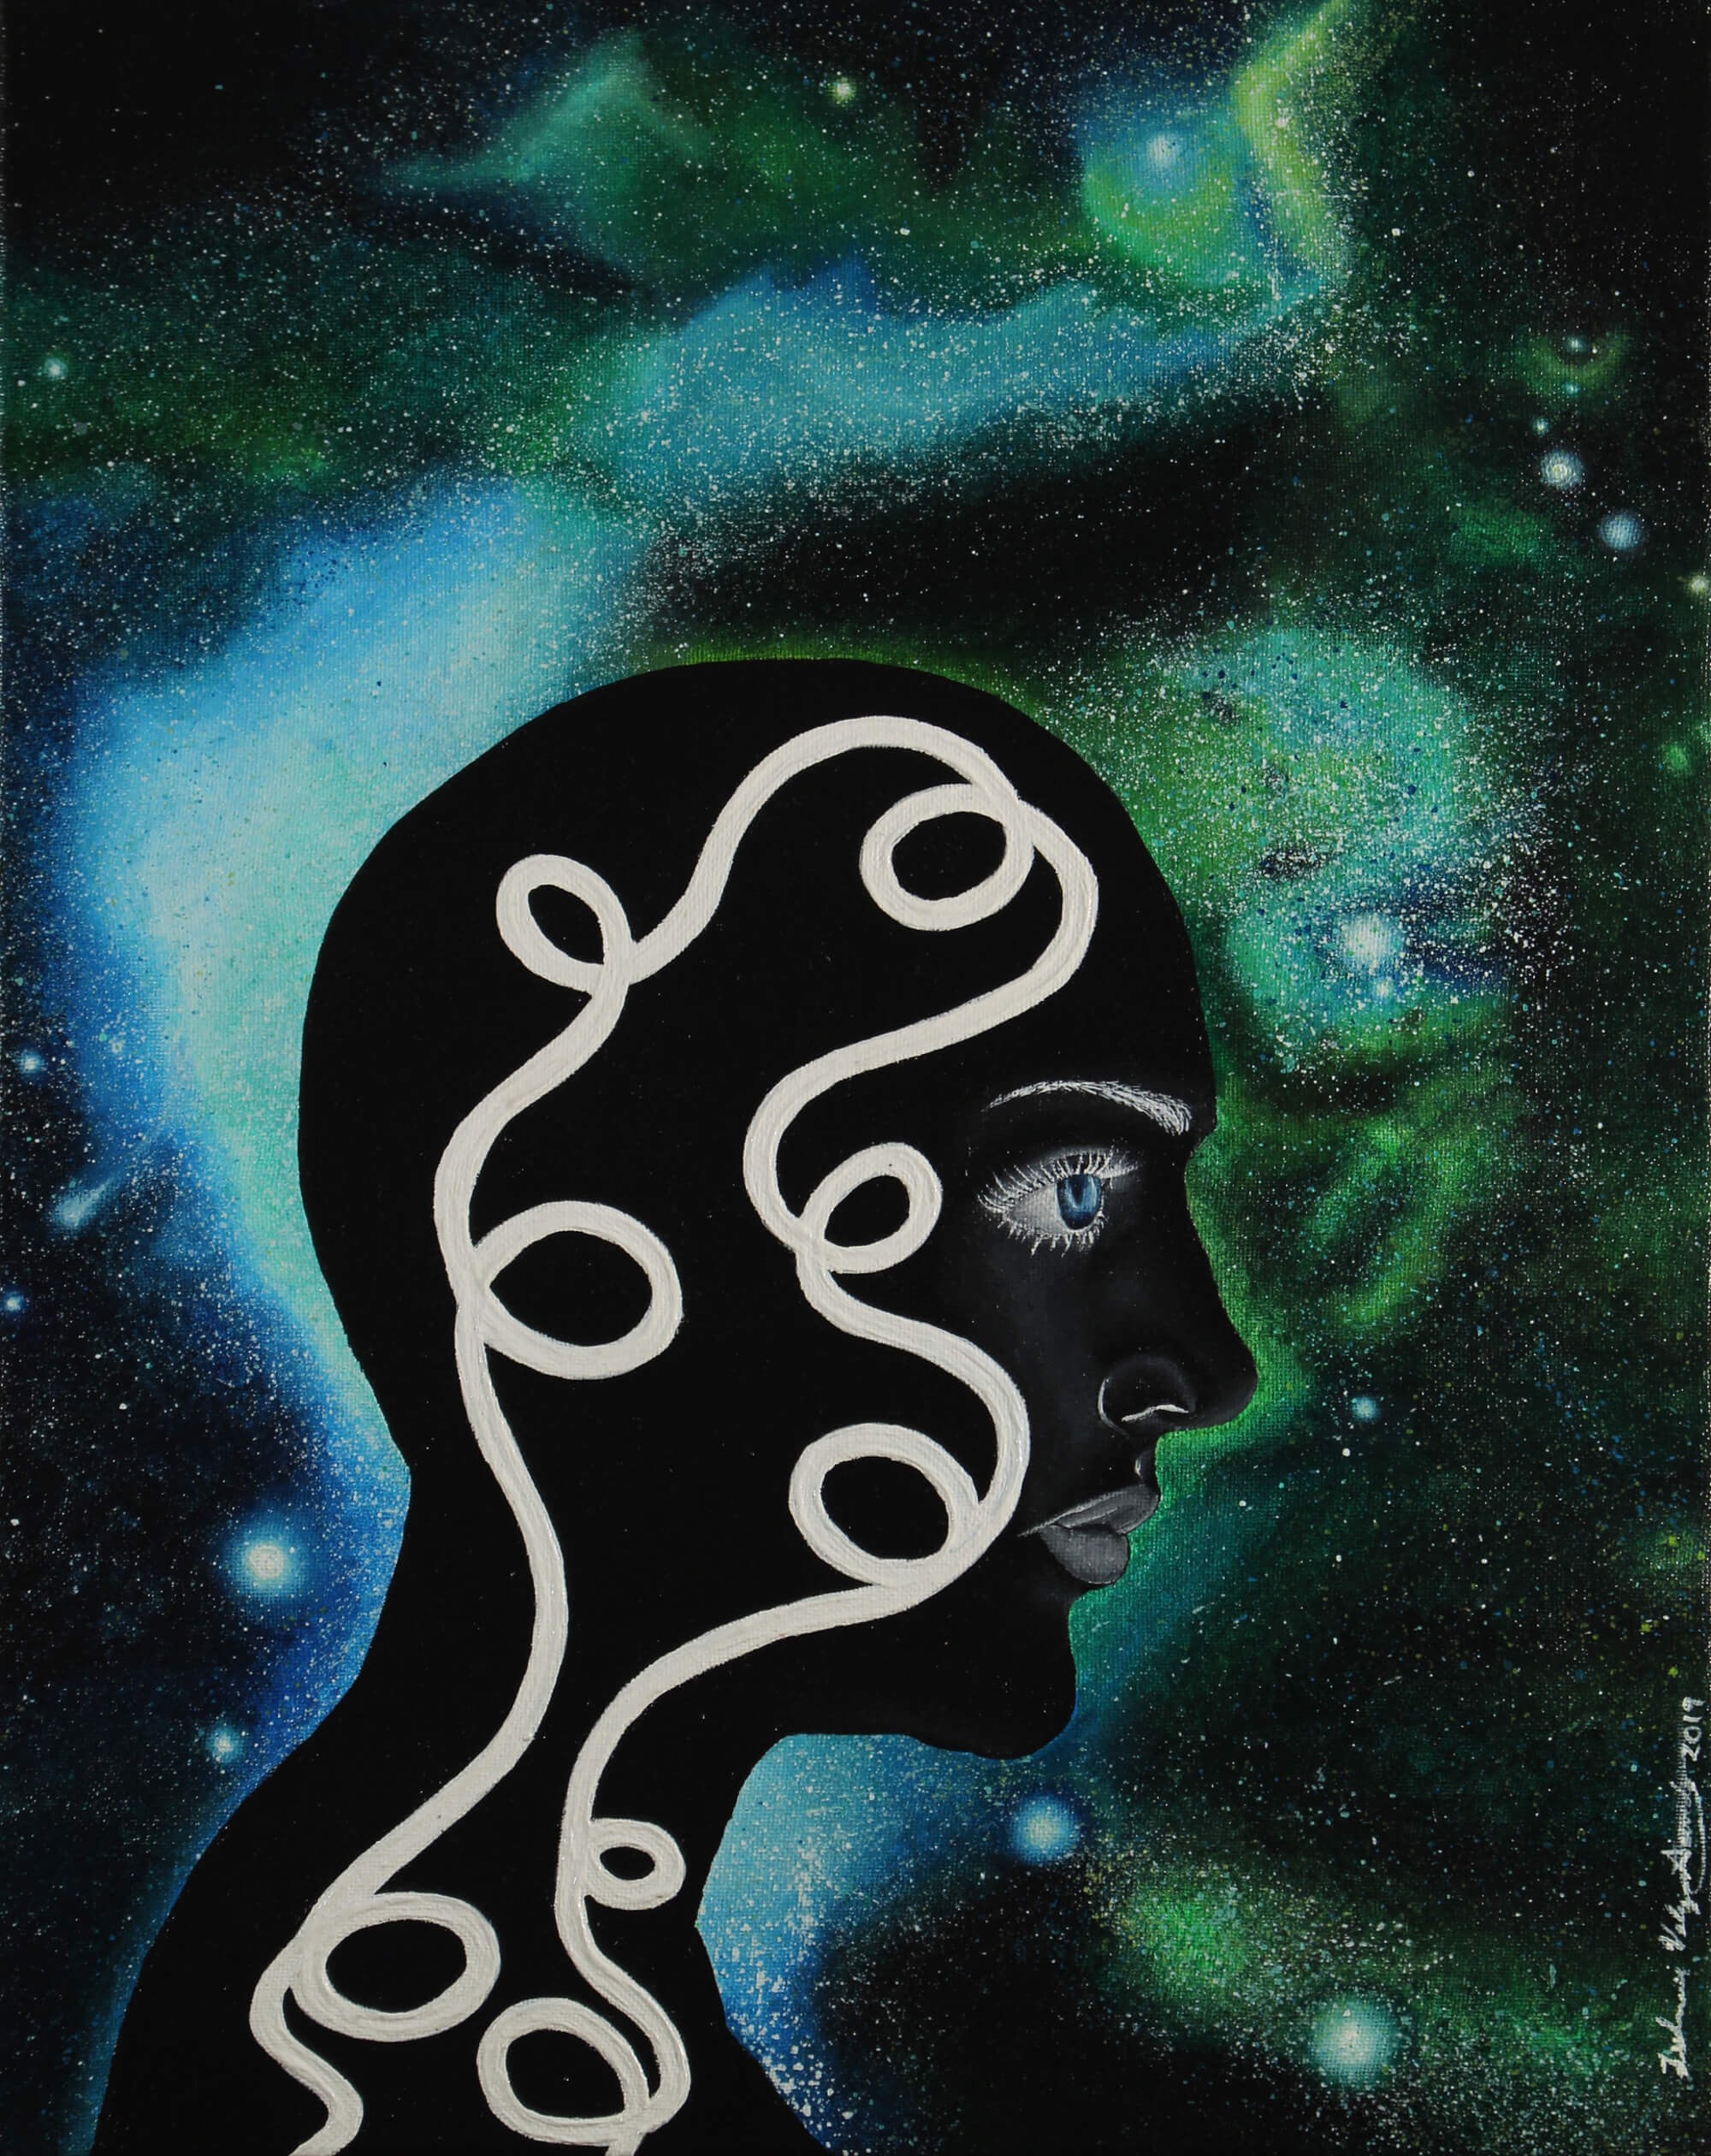 Acrylic painting of a male black head with a tangle string suspended in space by Zulmarie Vélez Acevedo